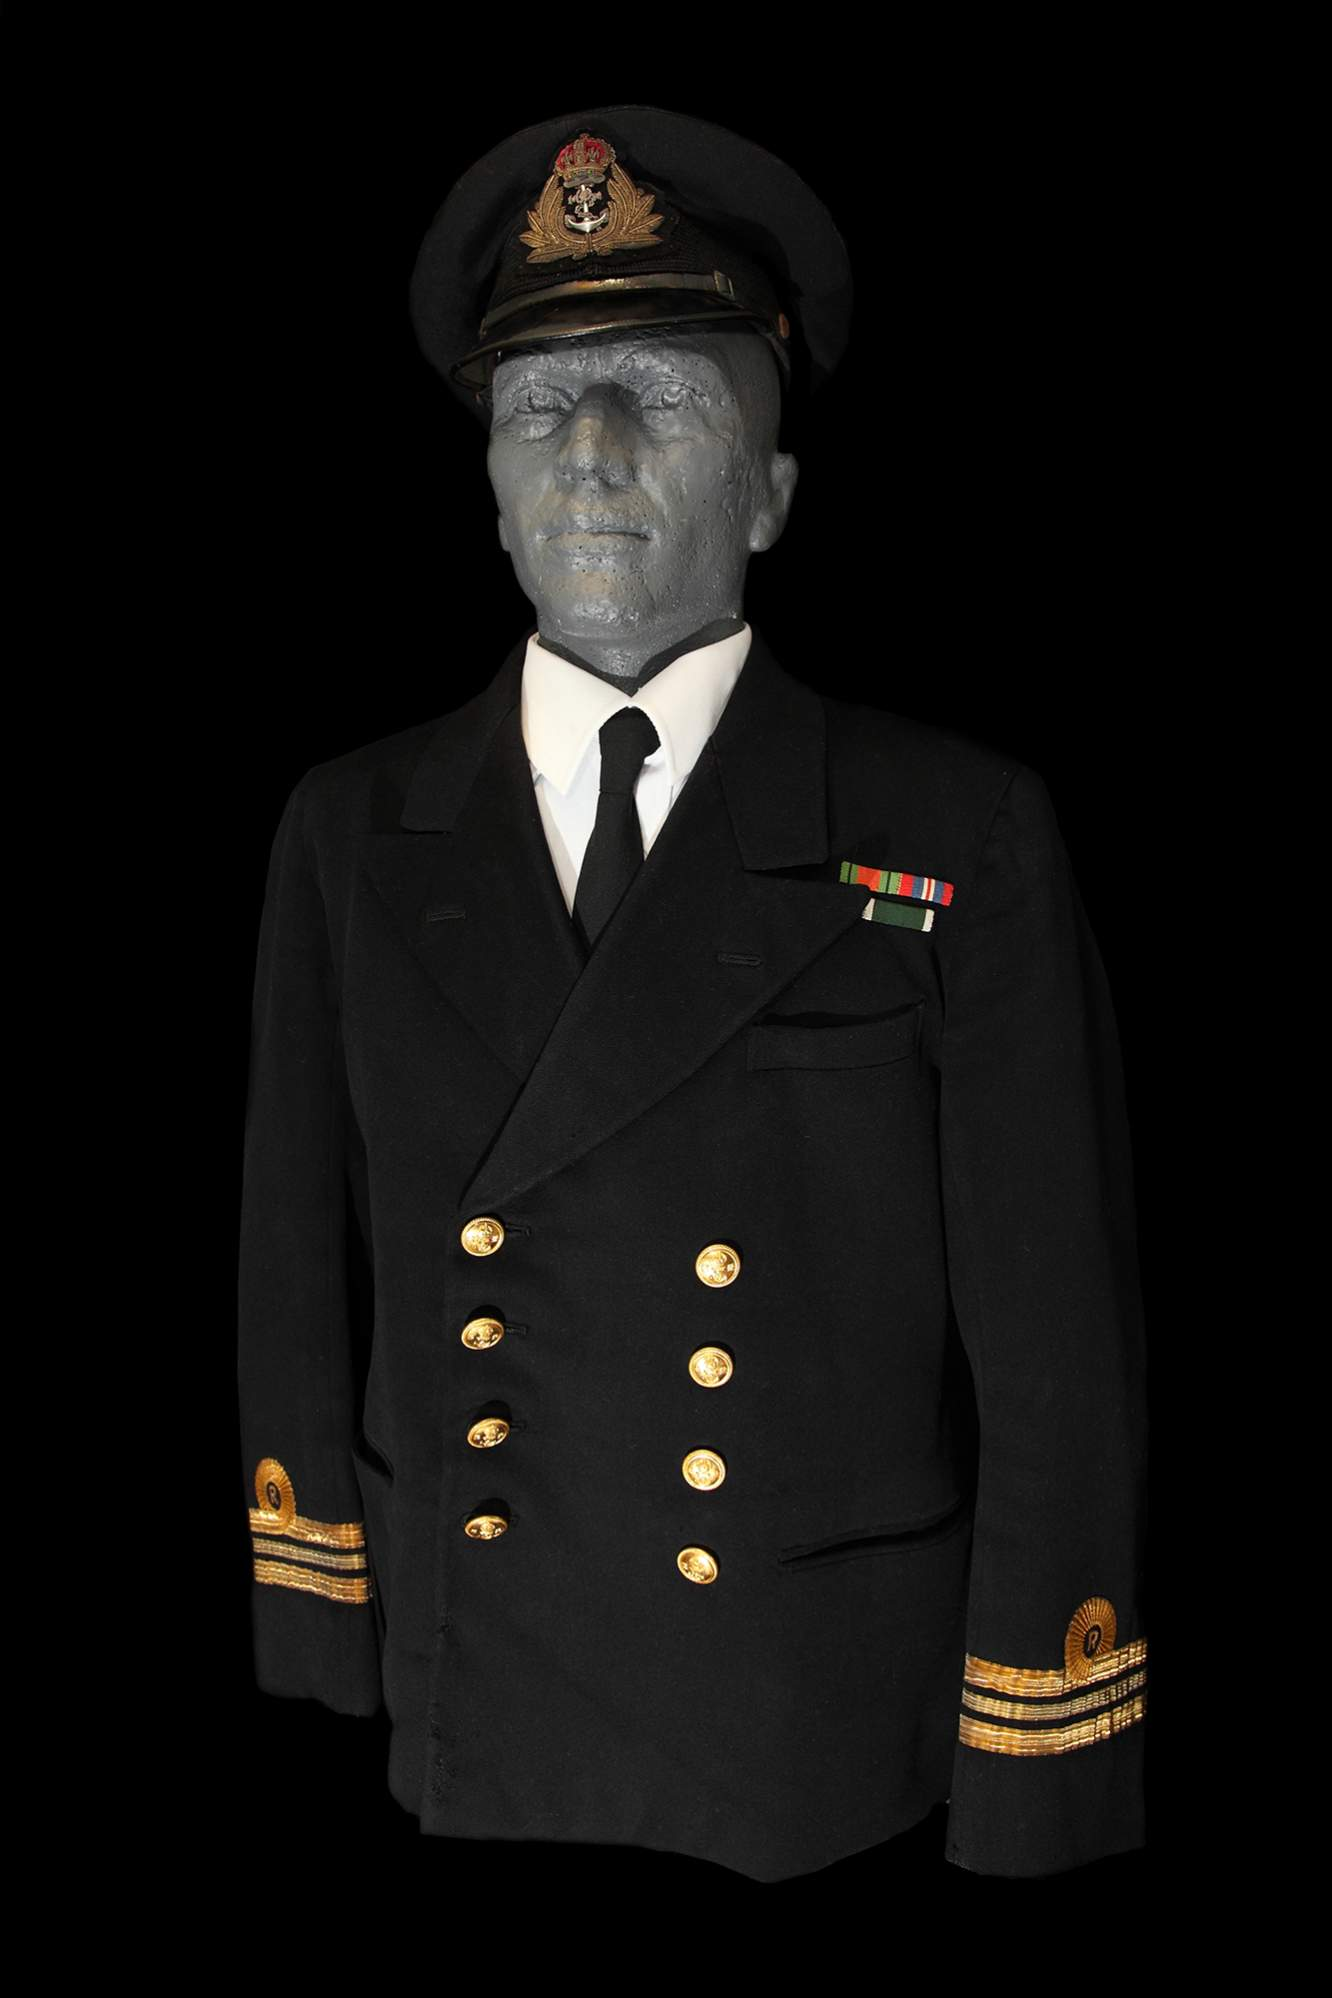 dating a royal navy officer Find great deals on ebay for royal navy cap and royal navy cap officers wwii royal navy cap royal navy hat ww2 officers cap navy collectibles (unknown date).